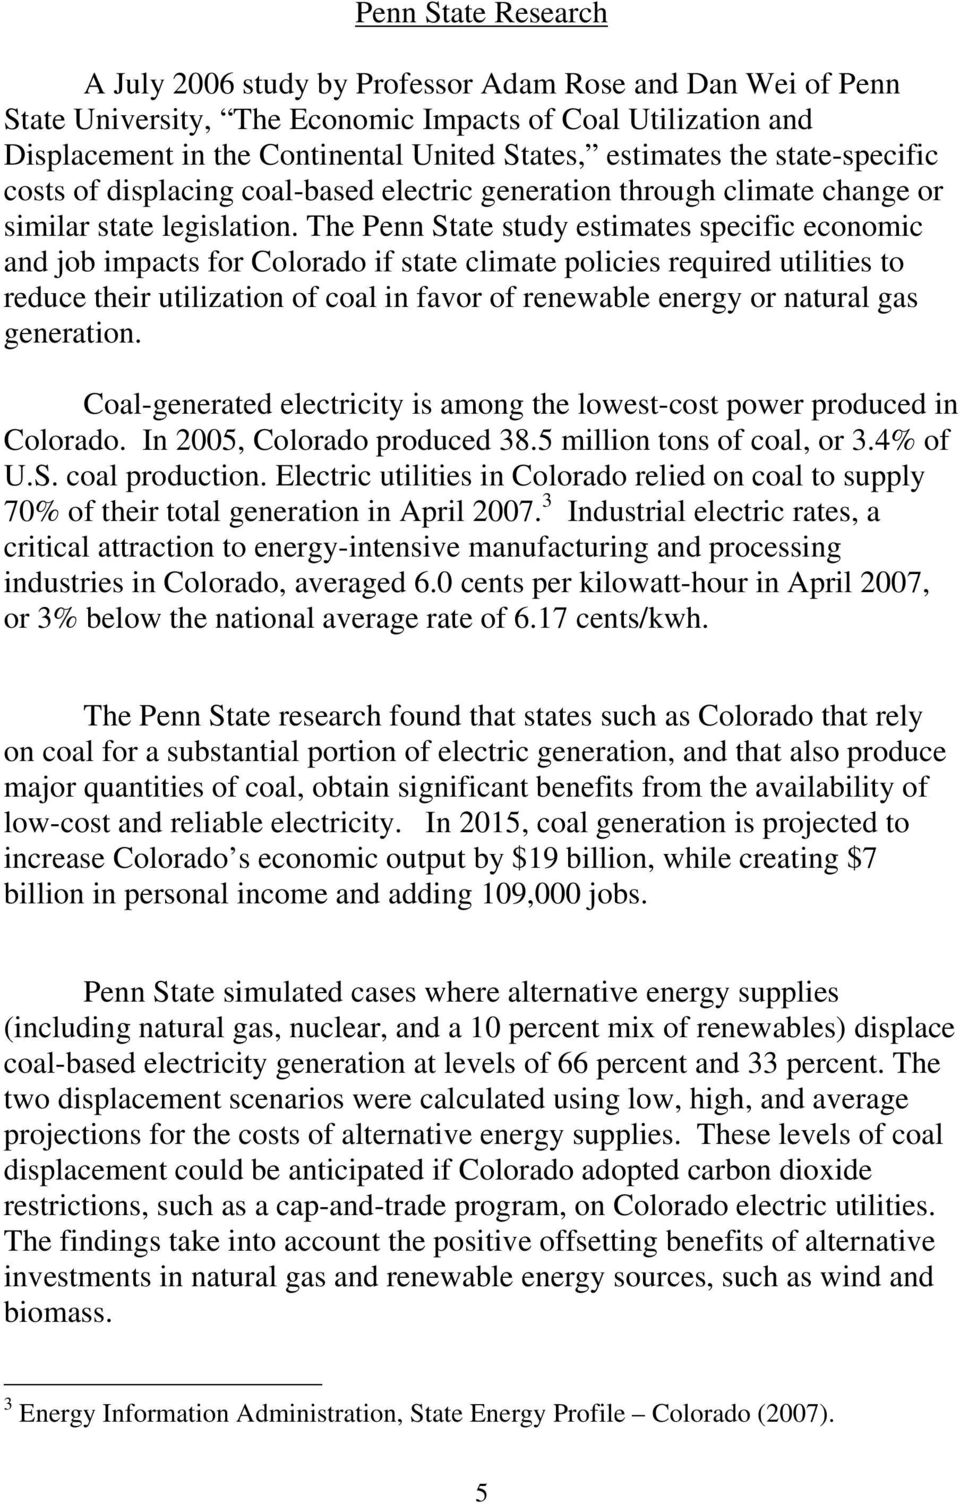 The Penn State study estimates specific economic and job impacts for Colorado if state climate policies required utilities to reduce their utilization of coal in favor of renewable energy or natural